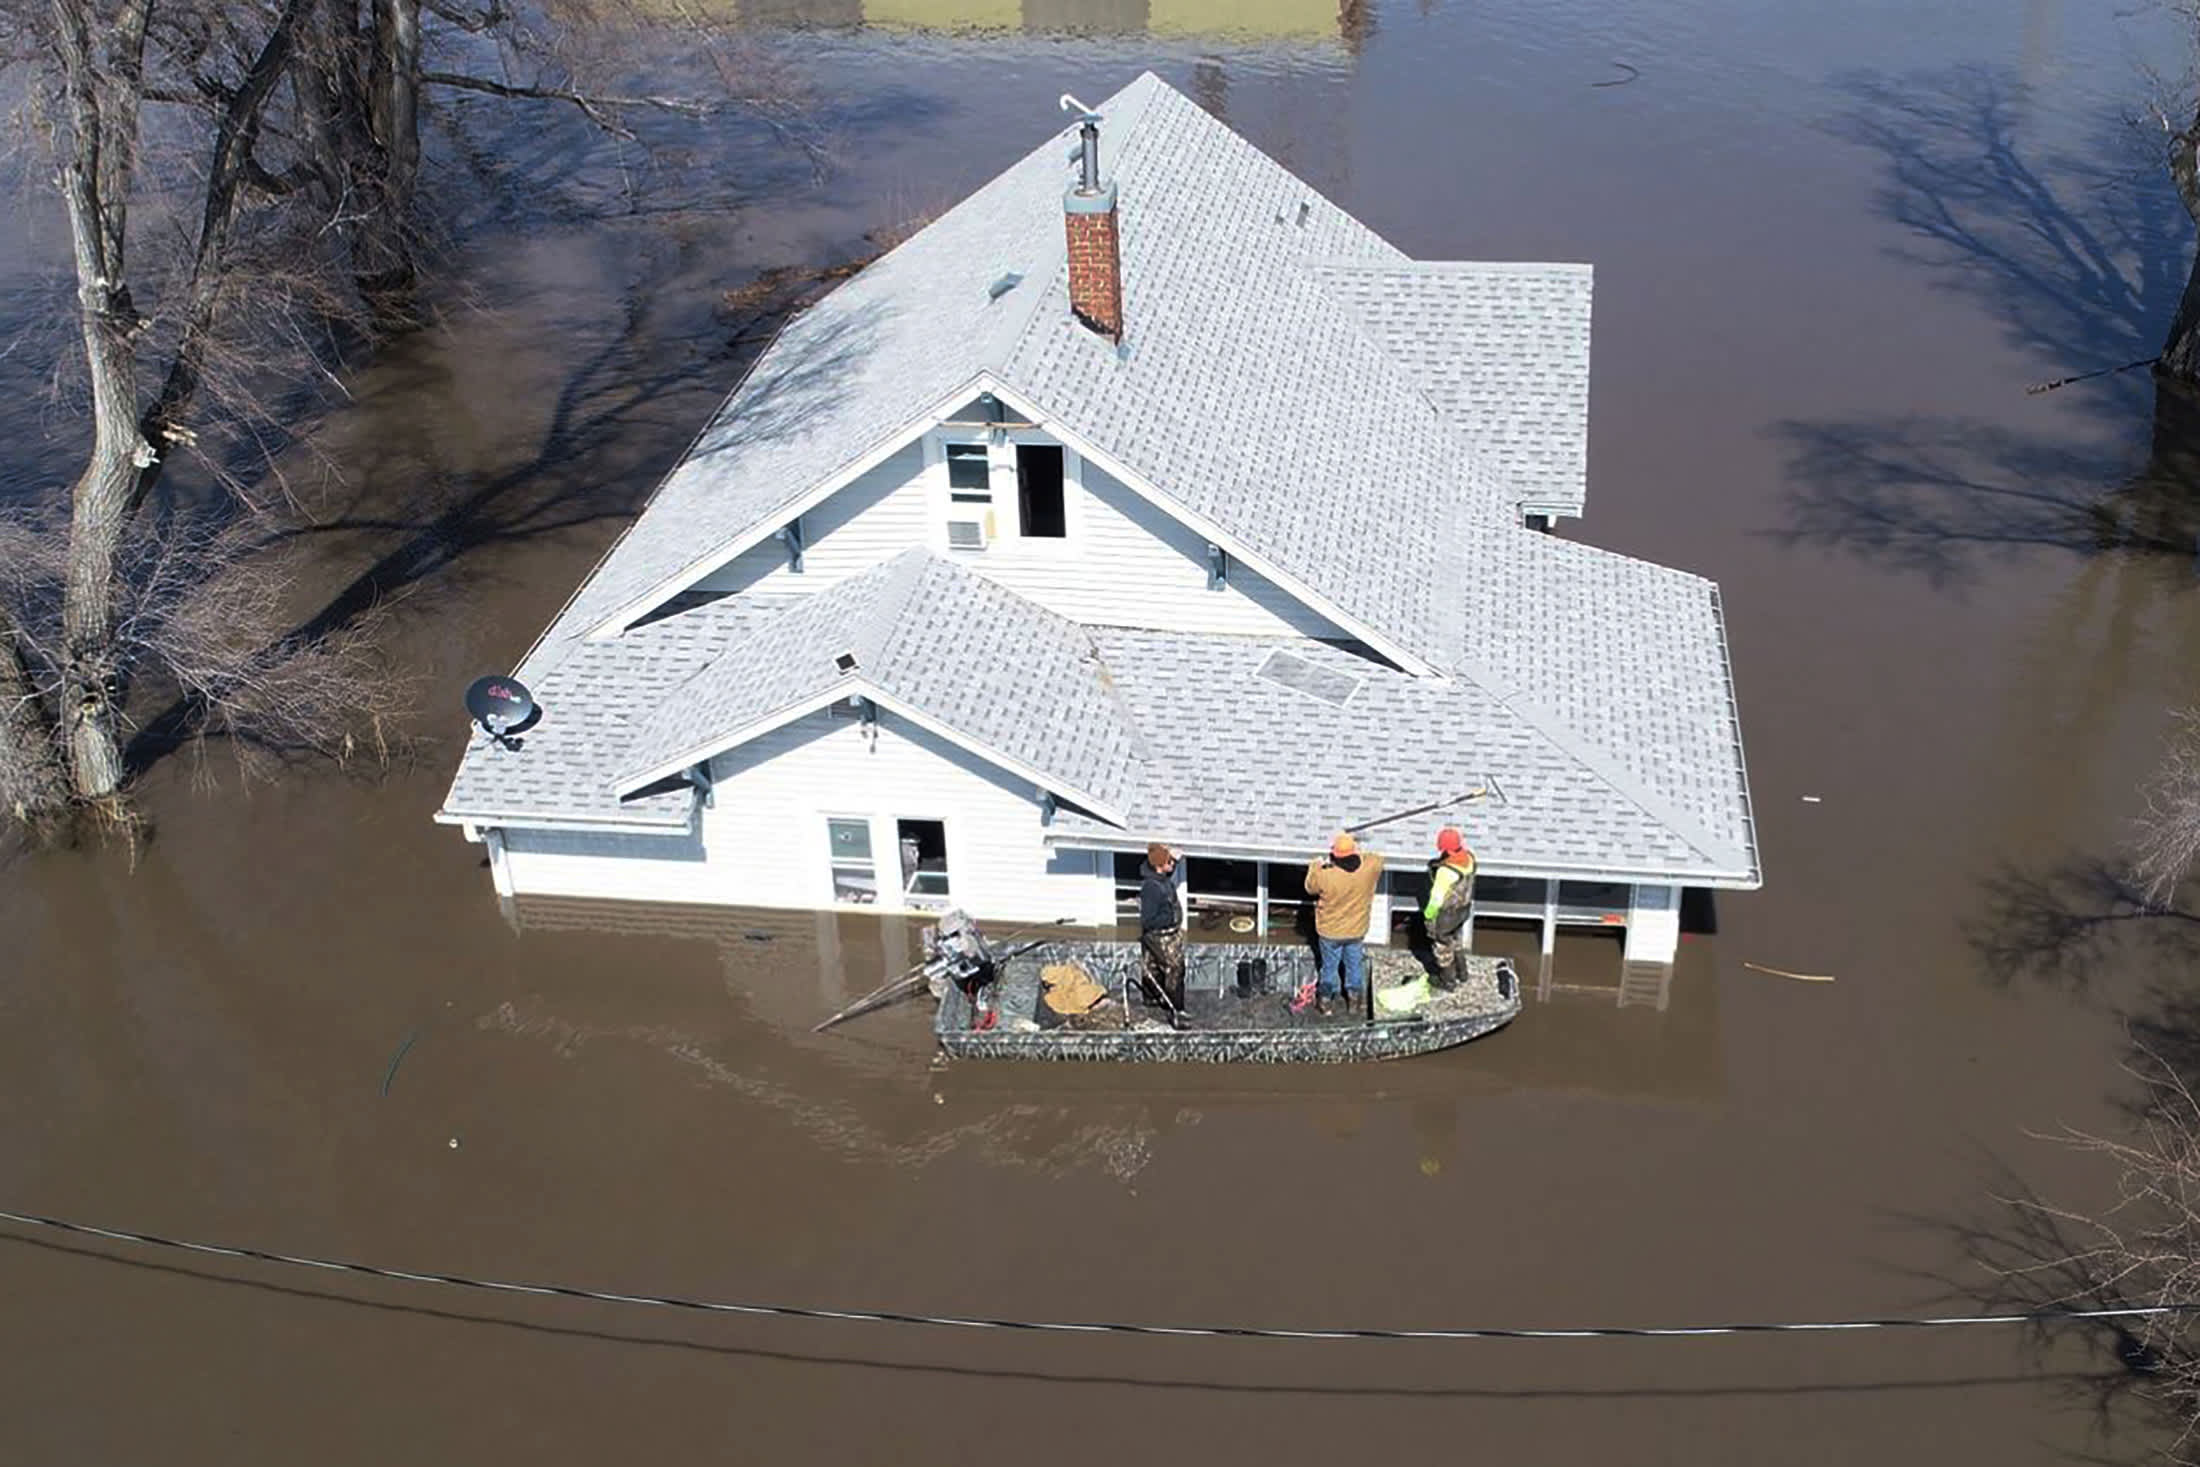 Study says 630 million could be living below projected flood levels by 2100